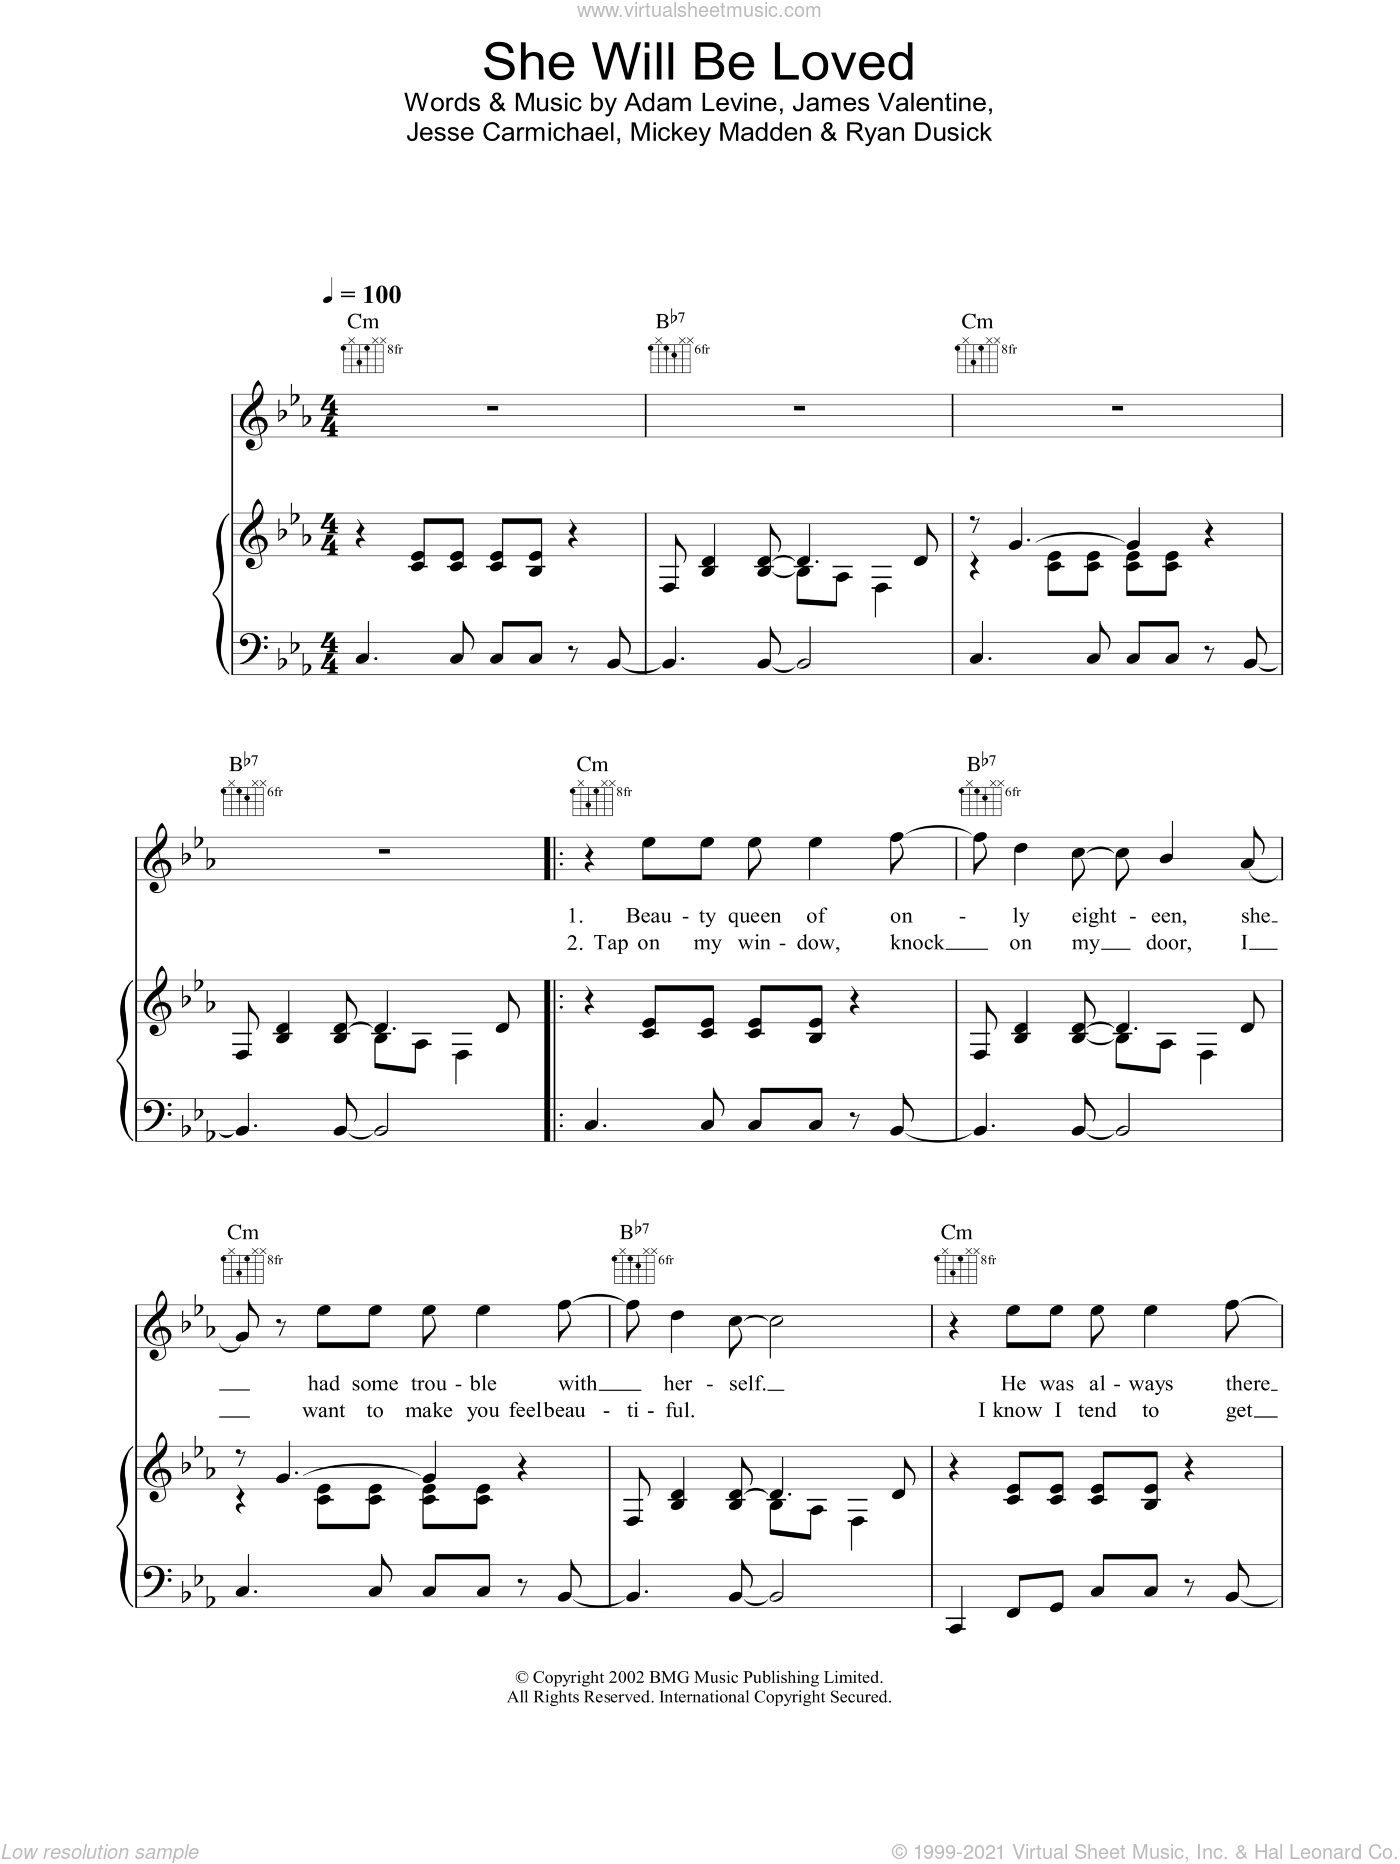 She Will Be Loved sheet music for voice, piano or guitar by Maroon 5. Score Image Preview.